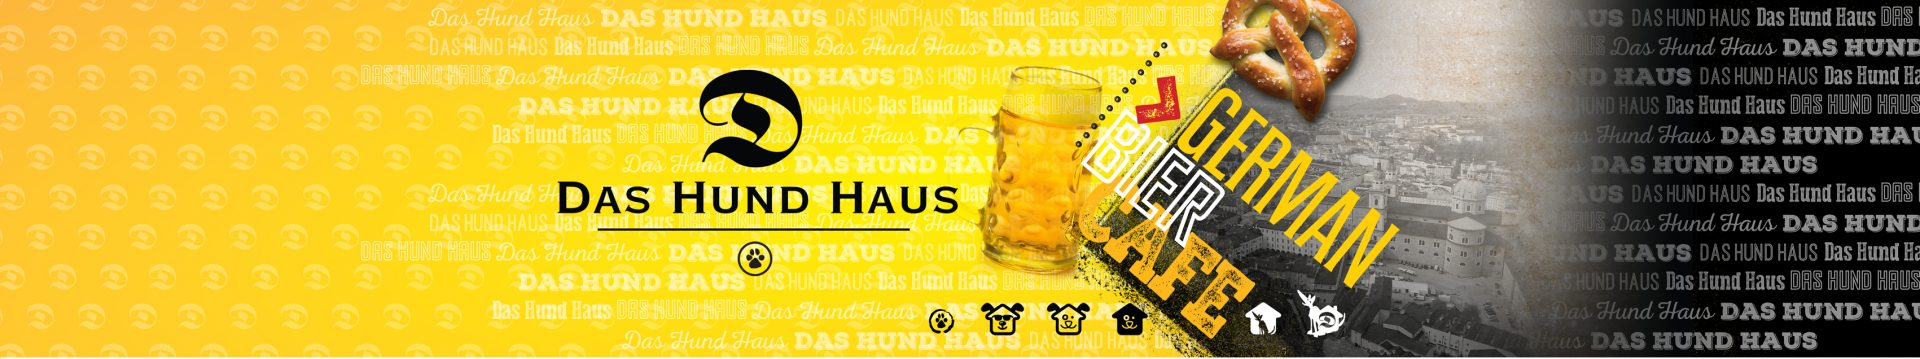 Das Hund Haus banner for promotion